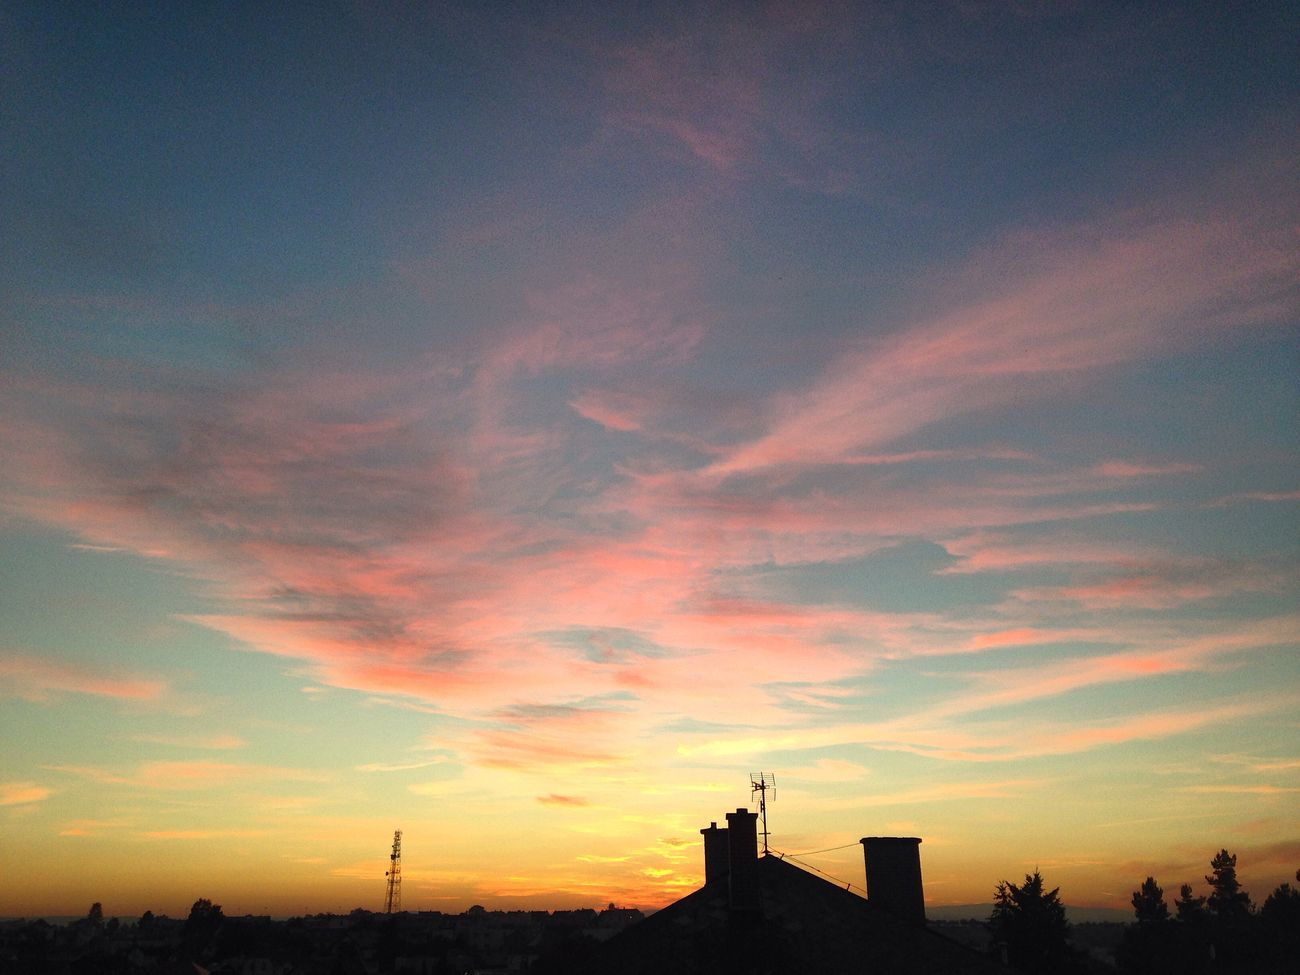 After sunset 😍 Sunset Evening Czech Republic Sadness... Clouds IOS9 IPhone IPhoneography Evening Sky